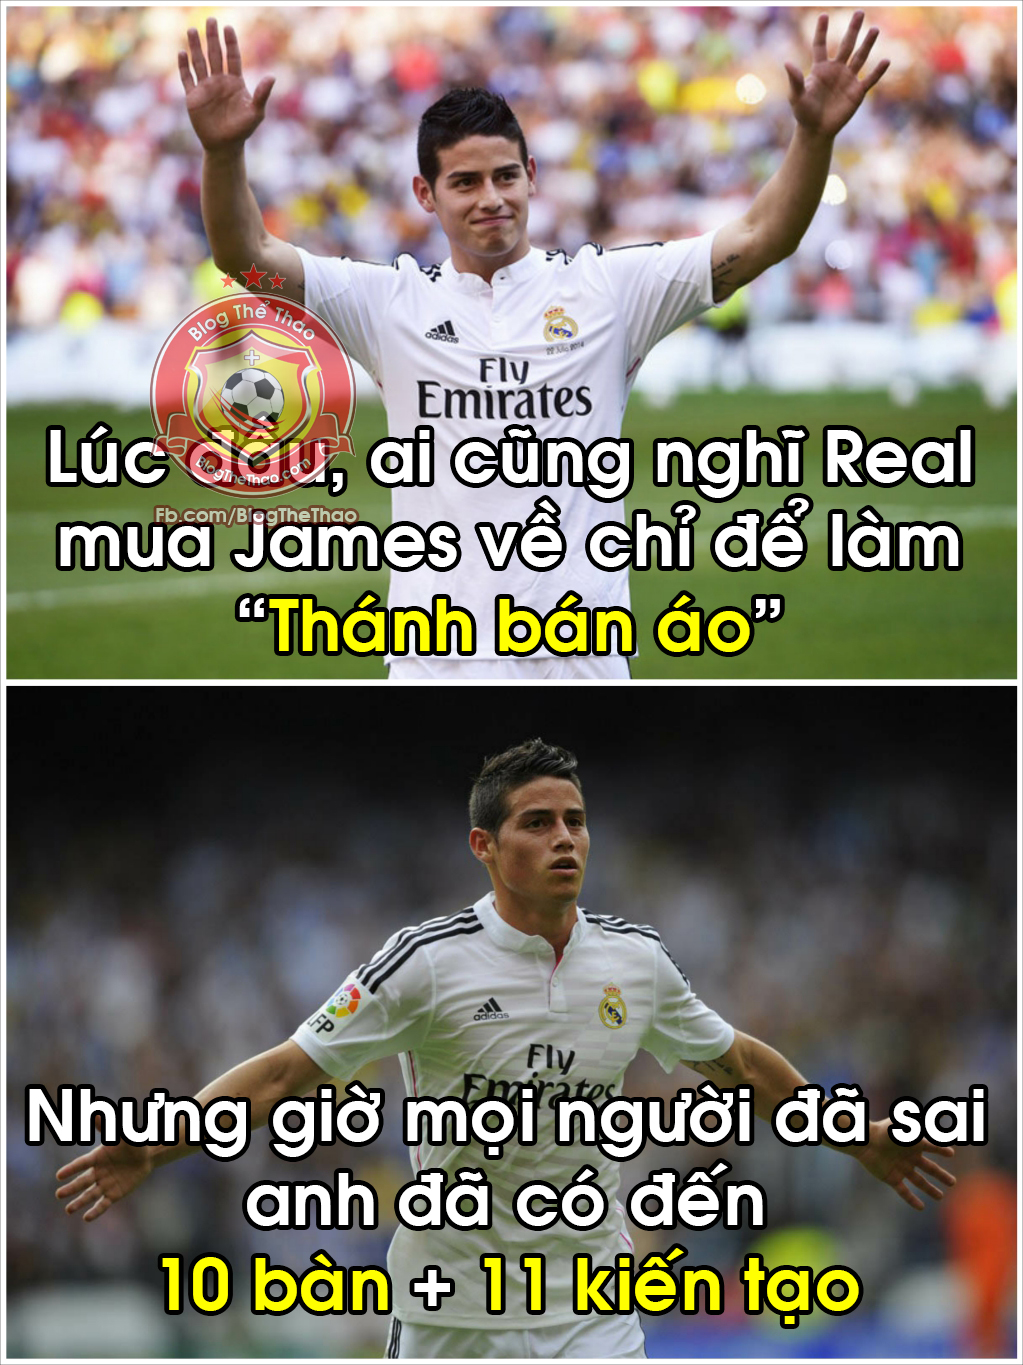 thanh tich cua james rodriguez real madrid